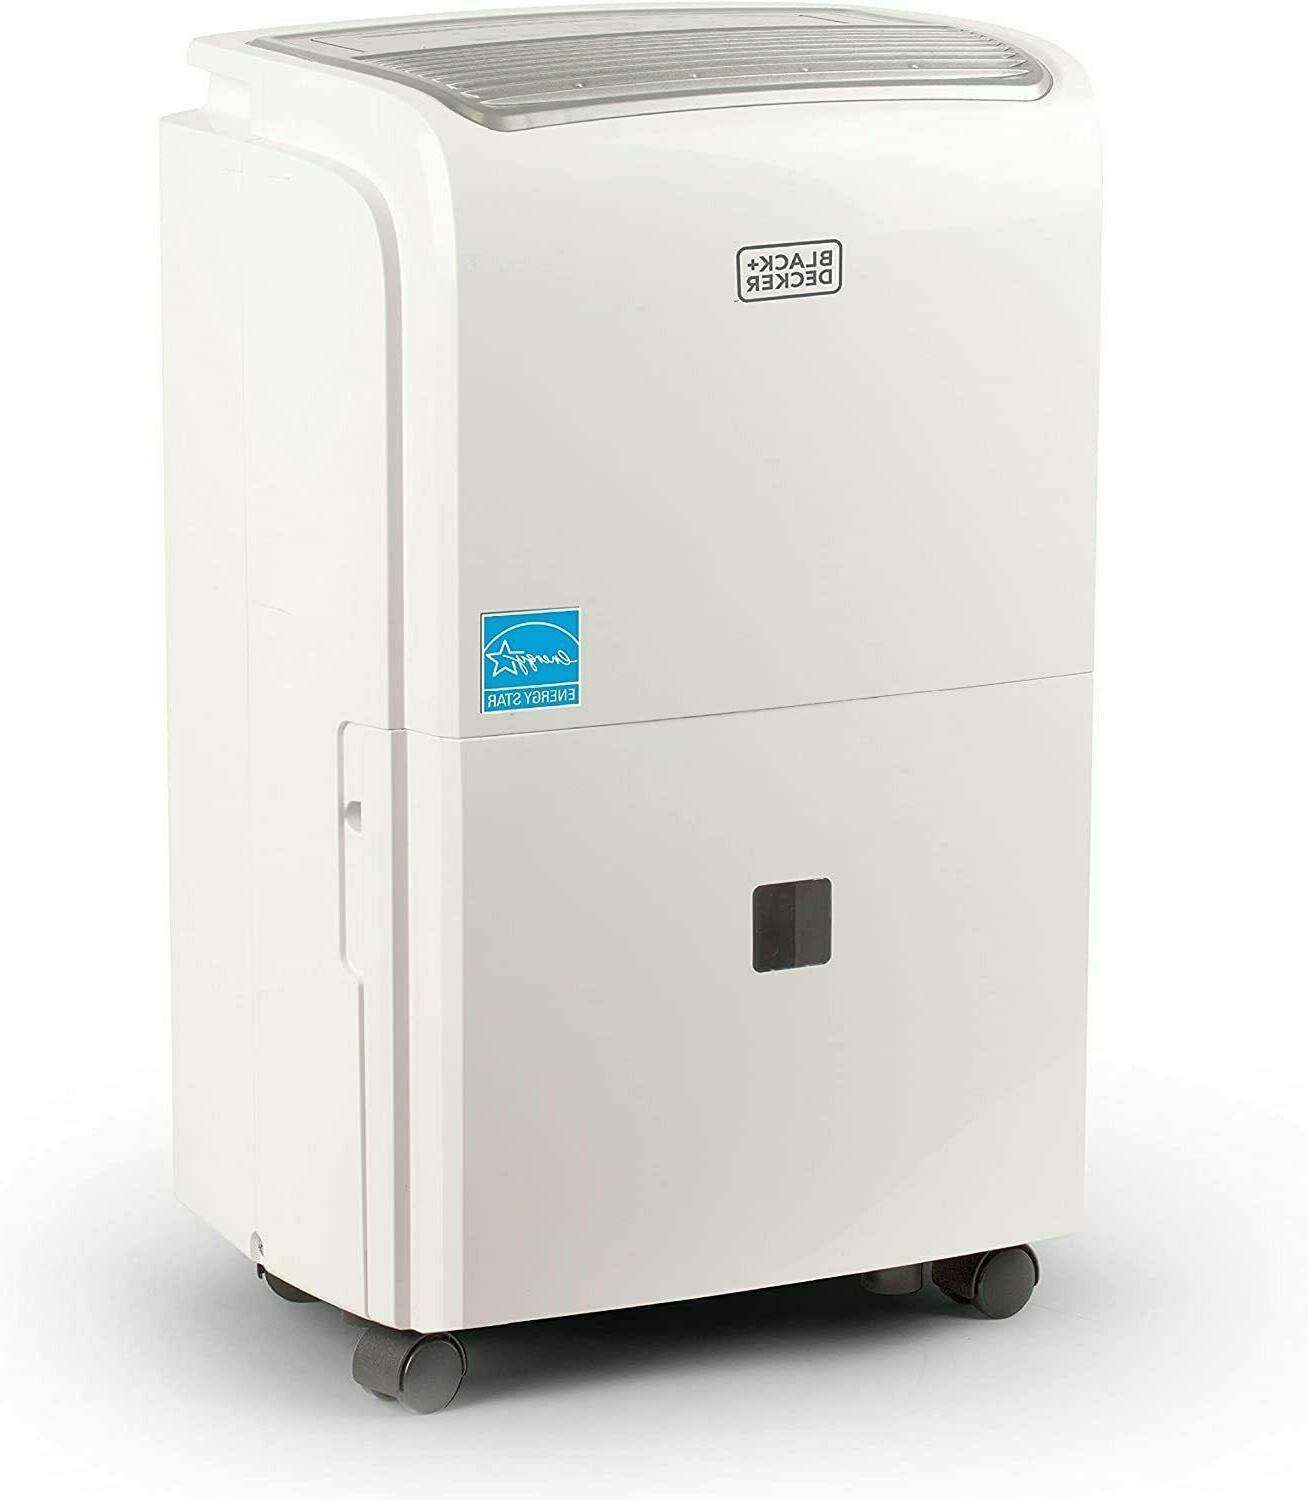 50 pint portable dehumidifier with built in